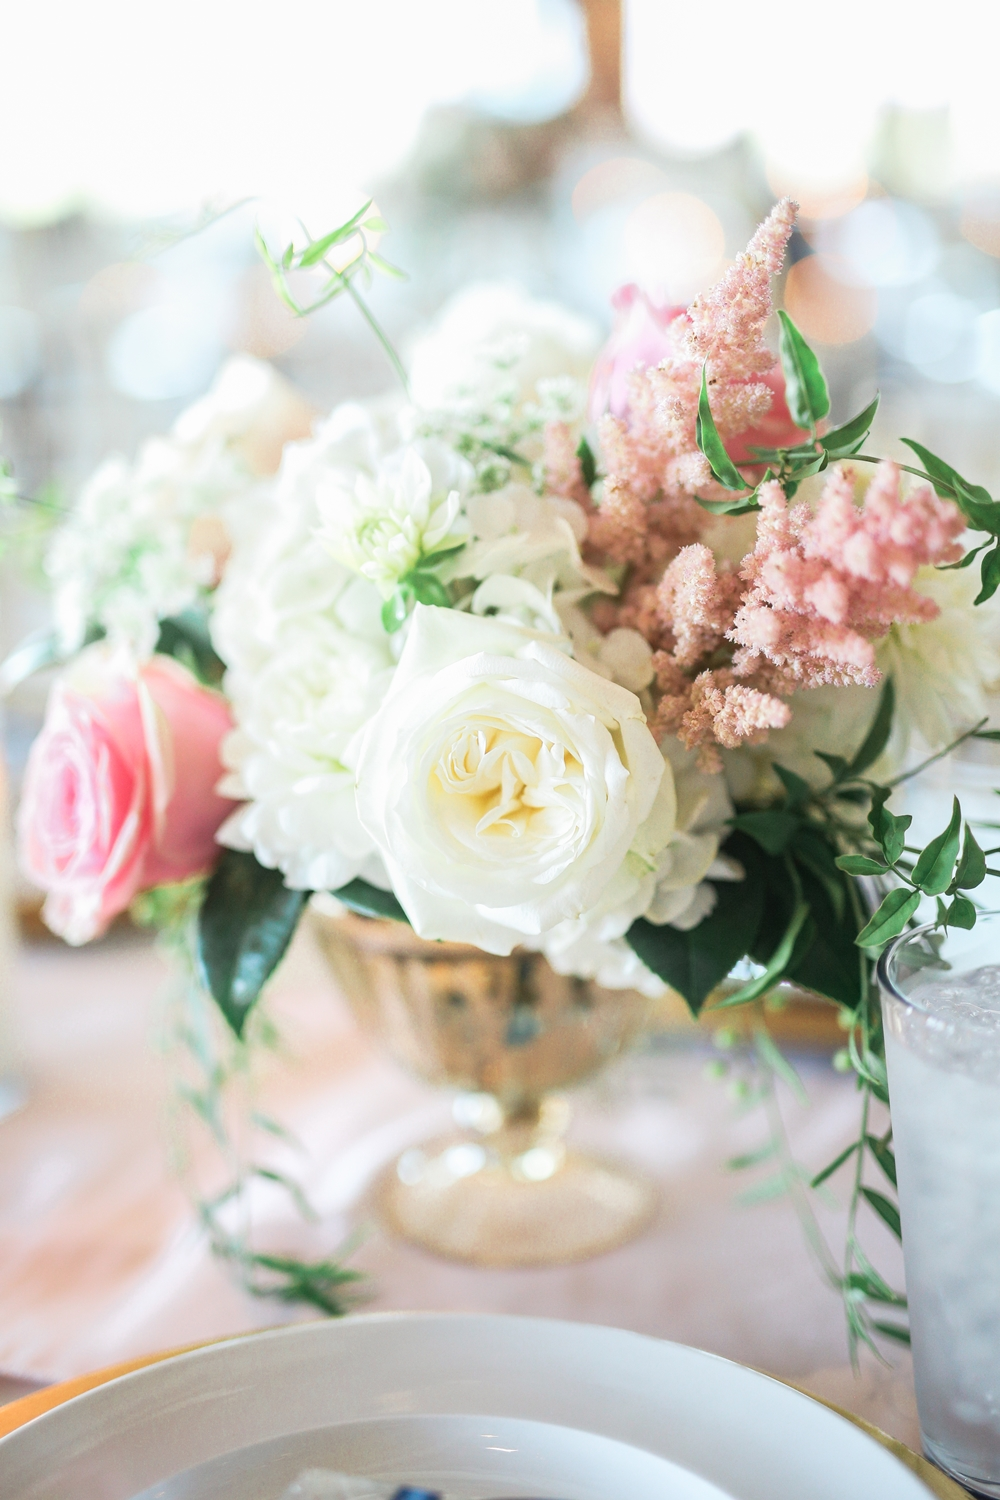 wedding decor by bloomers — bloomers flowers & decor